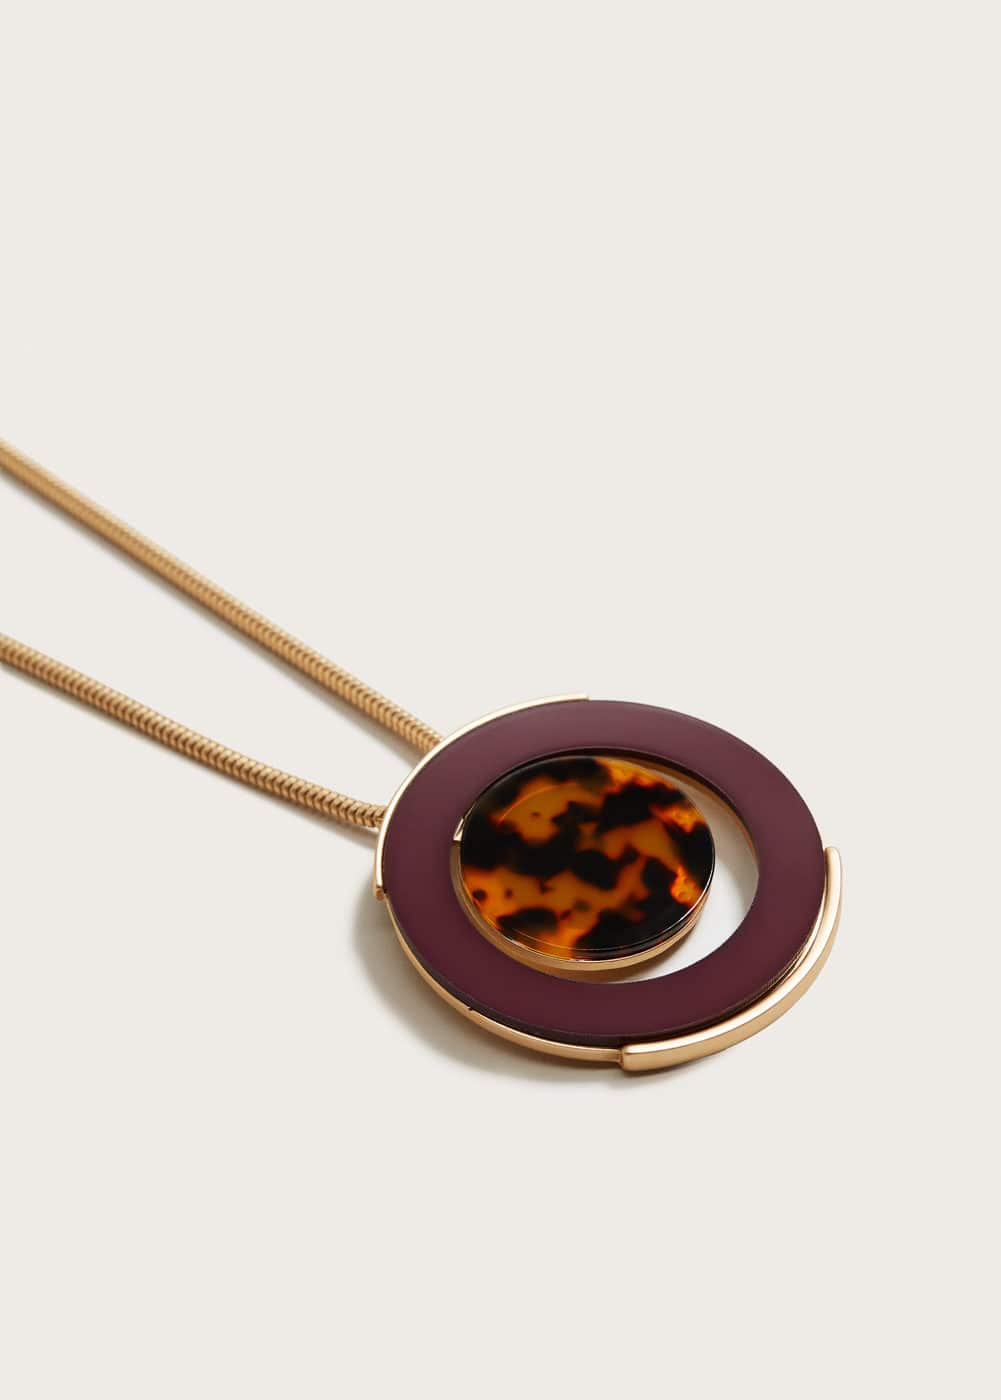 Tortoiseshell-effect pendant necklace | VIOLETA BY MANGO